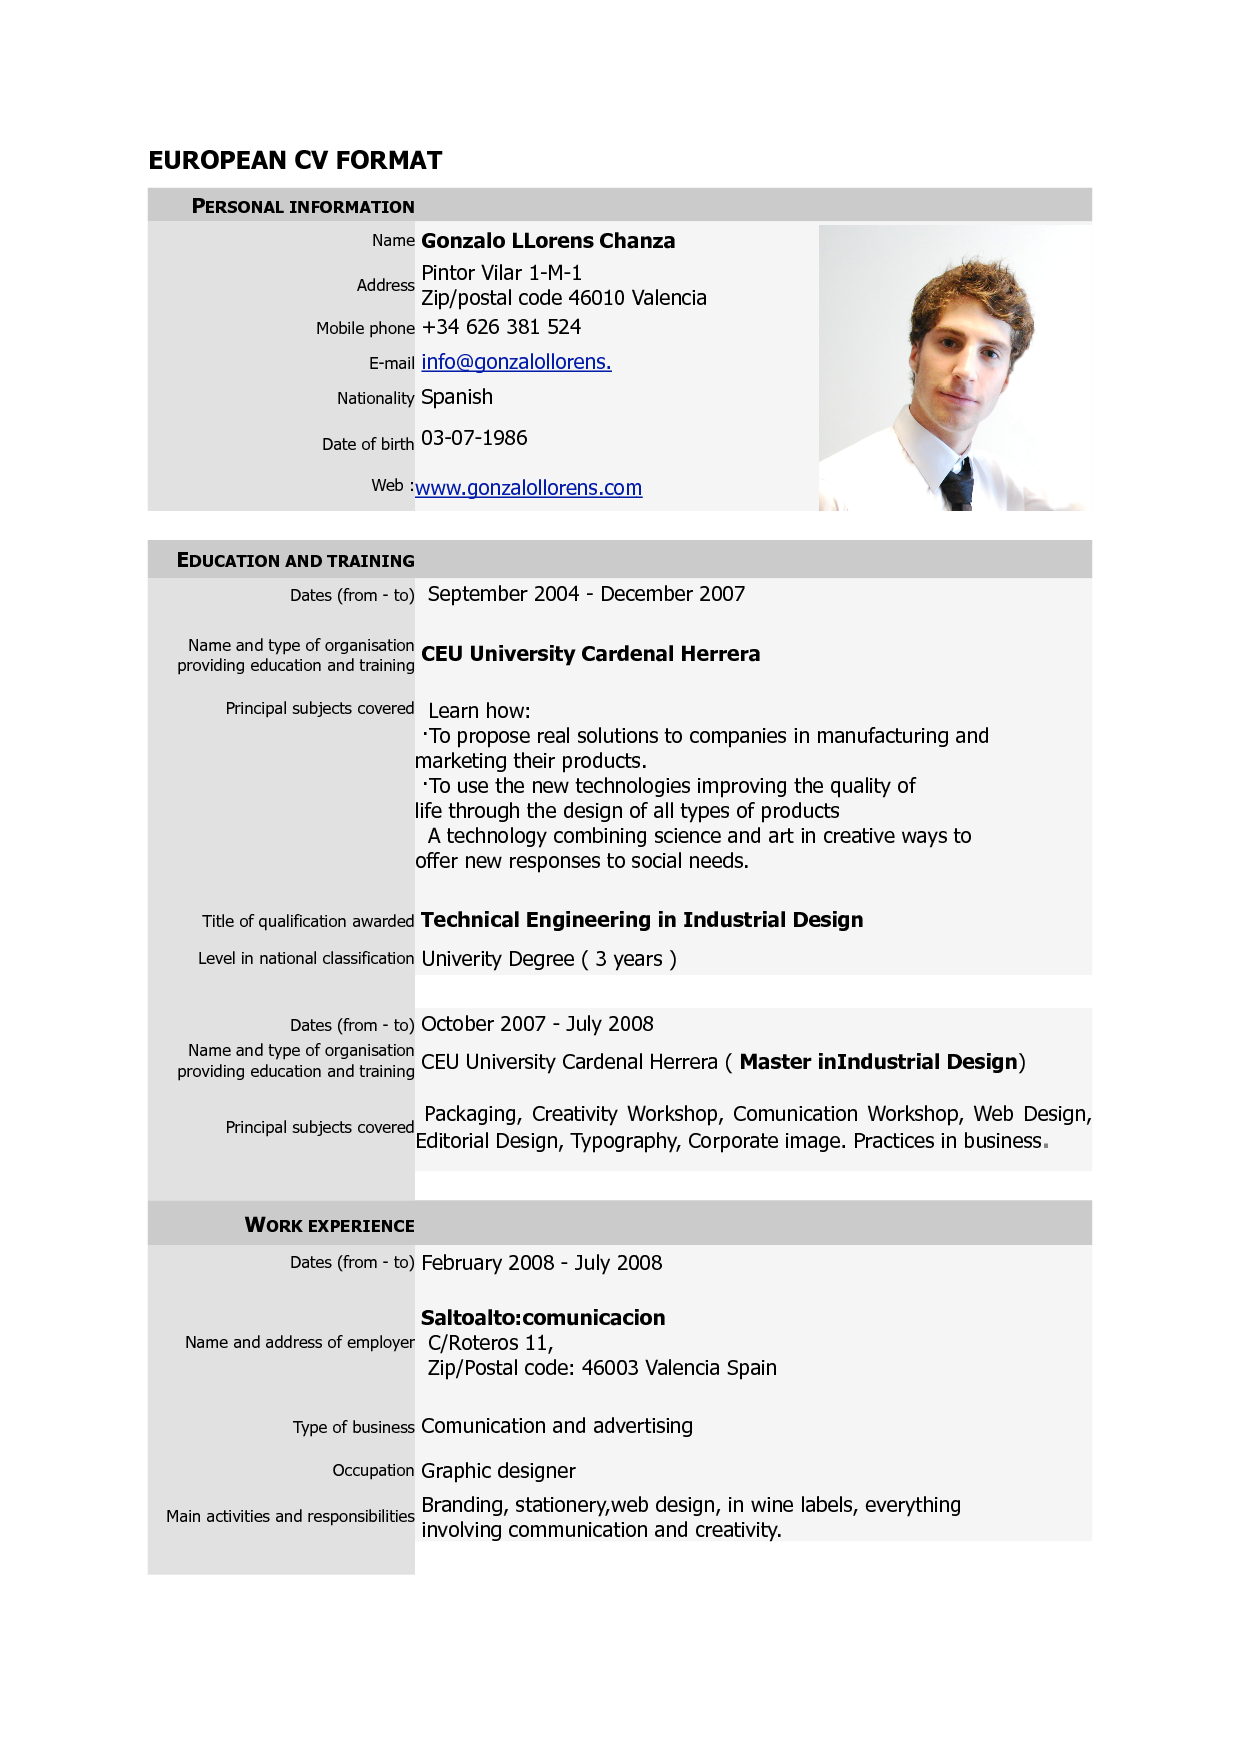 Free Downloadable Resume Templates For Word 2010 Free Download Cv Europass Pdf Europass Home European Cv Format Pdf